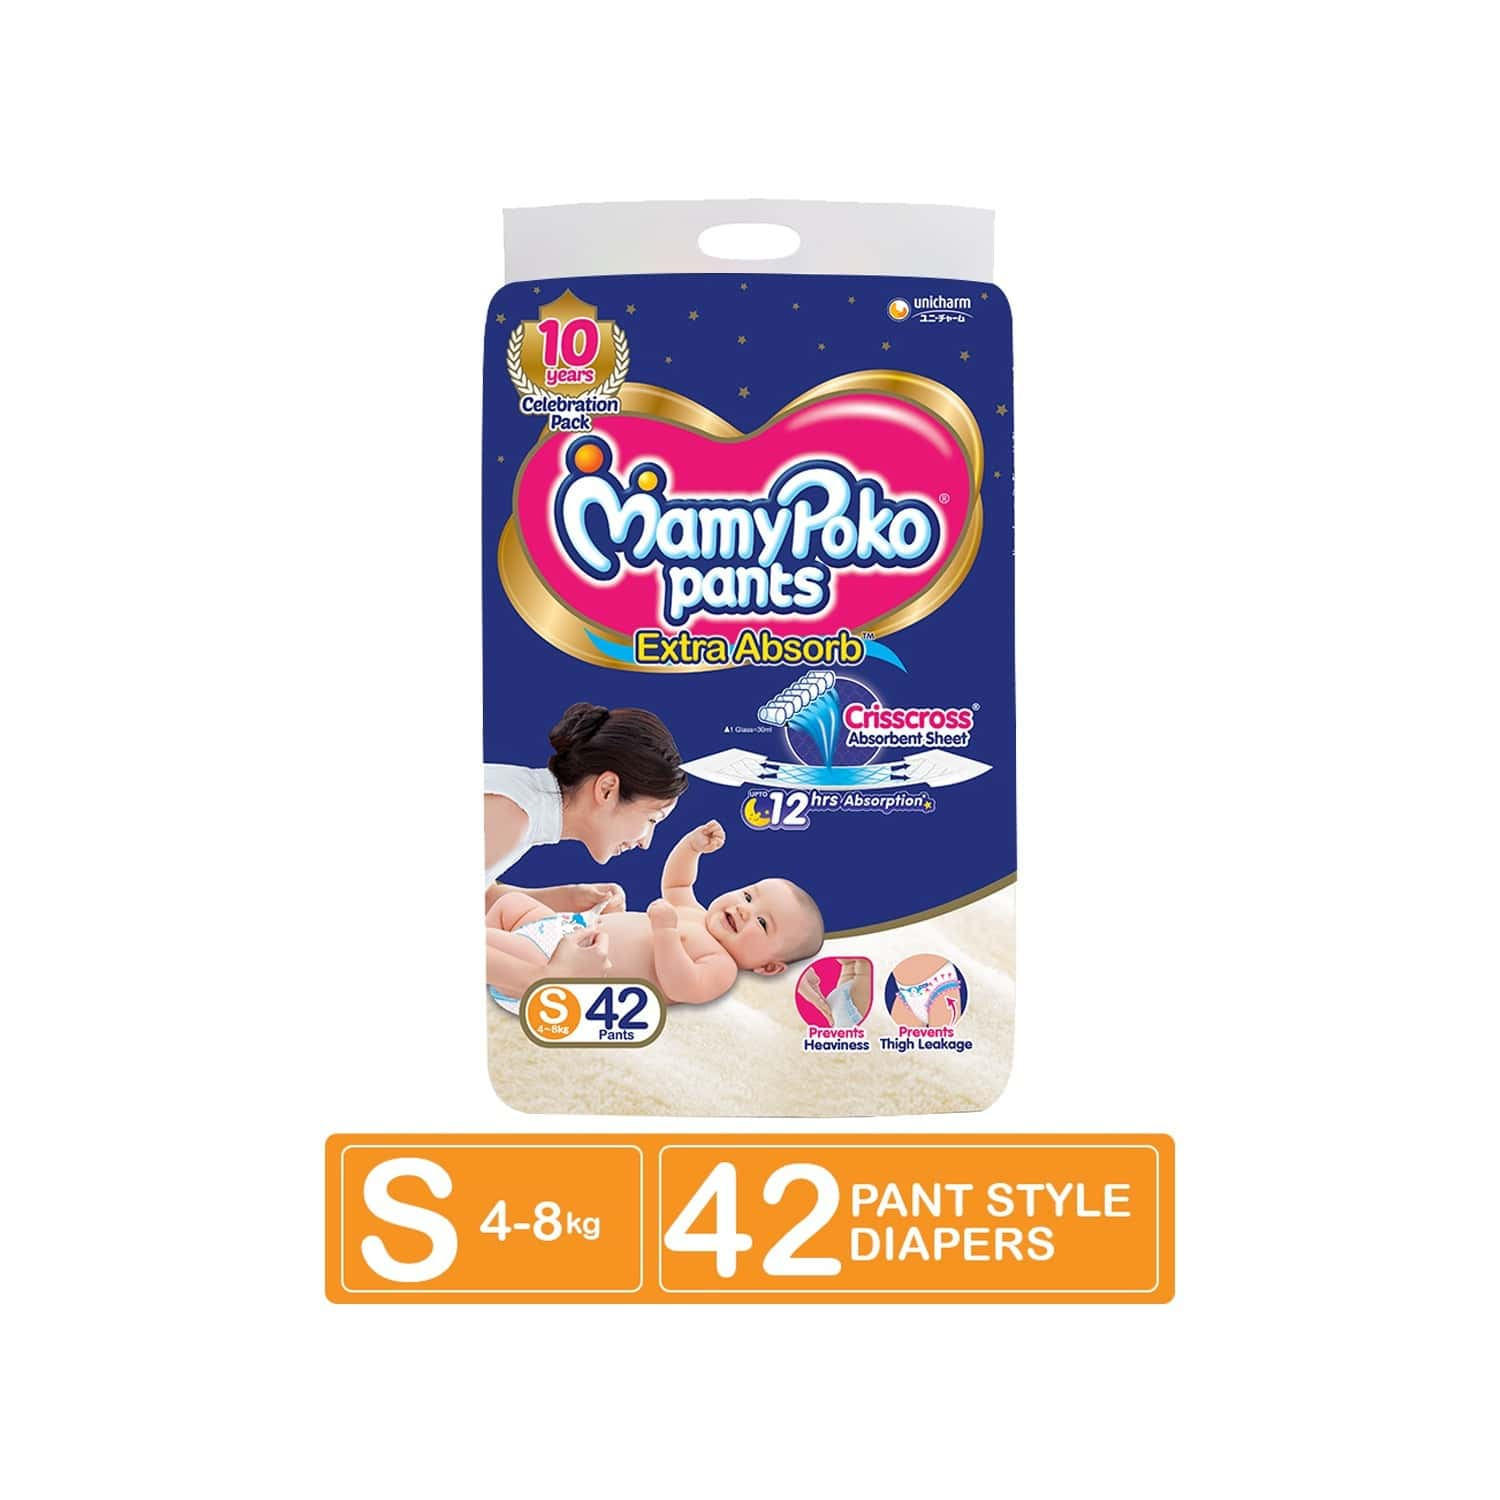 Mamypoko Pants Extra Absorb Diaper - Small Size, Pack Of 42 Diapers